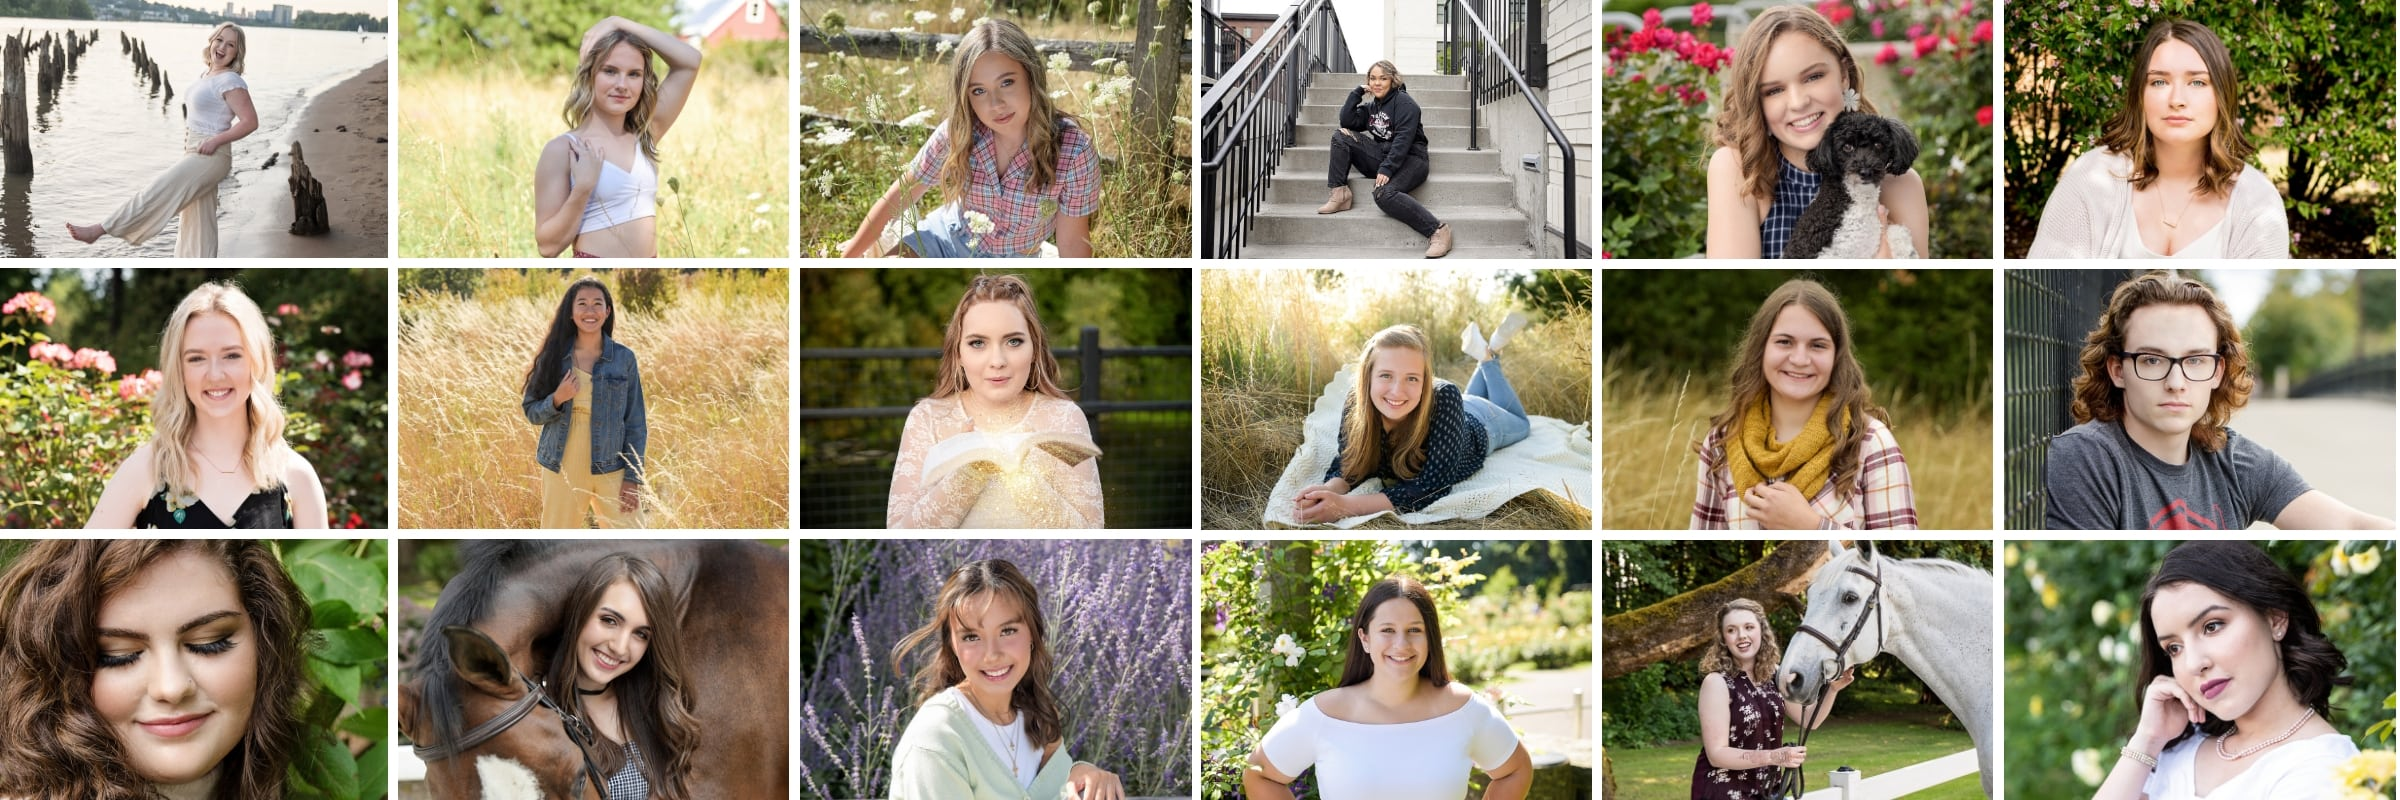 Portland-Senior-Pictures-Classof2020-Fall-Senior-Pictures-AnnaGrafPhotography